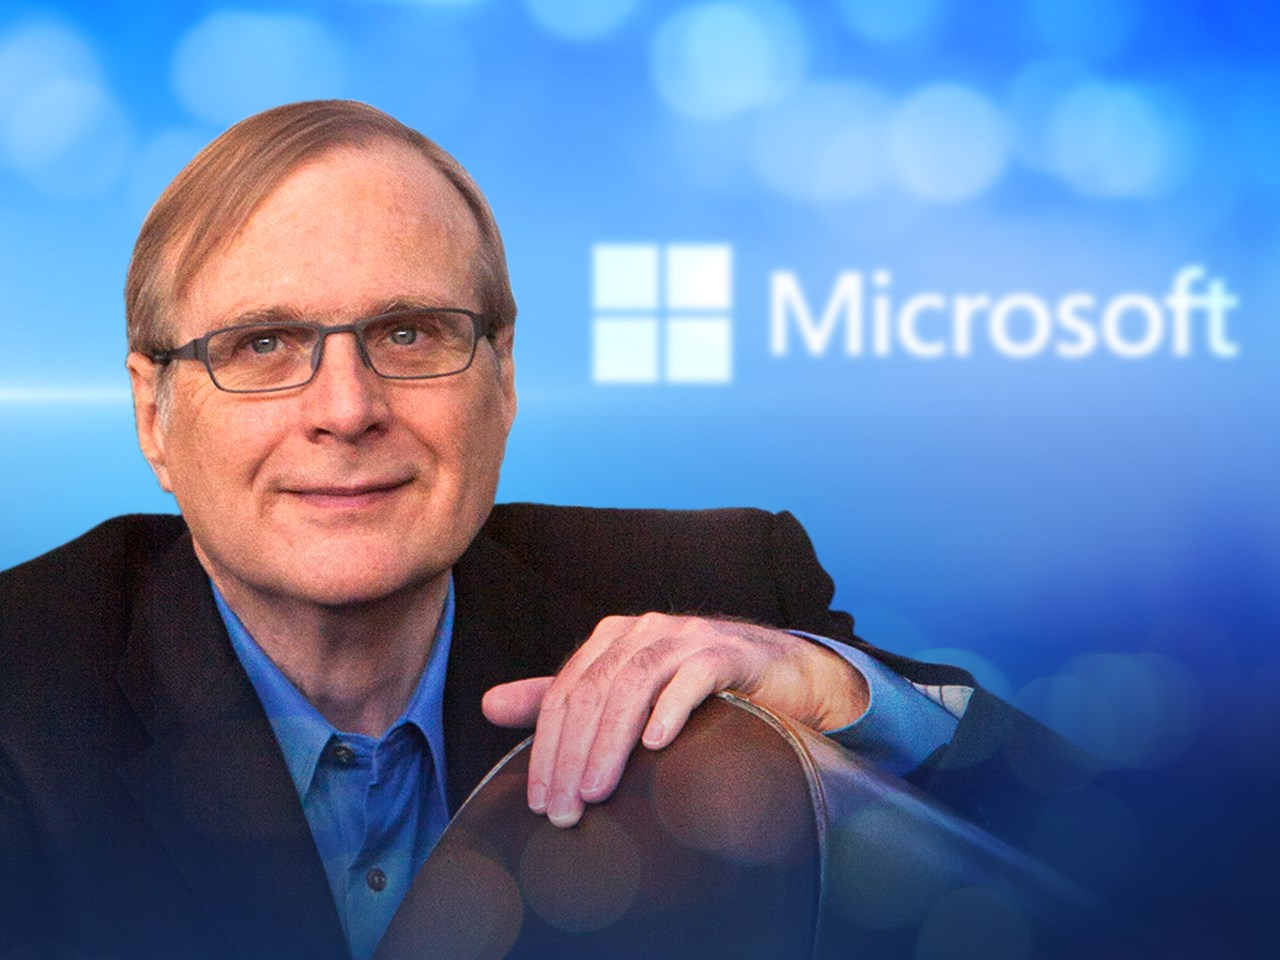 Remembering Paul Allen – Microsoft's Co-Founder Who Lost His Battle With Cancer